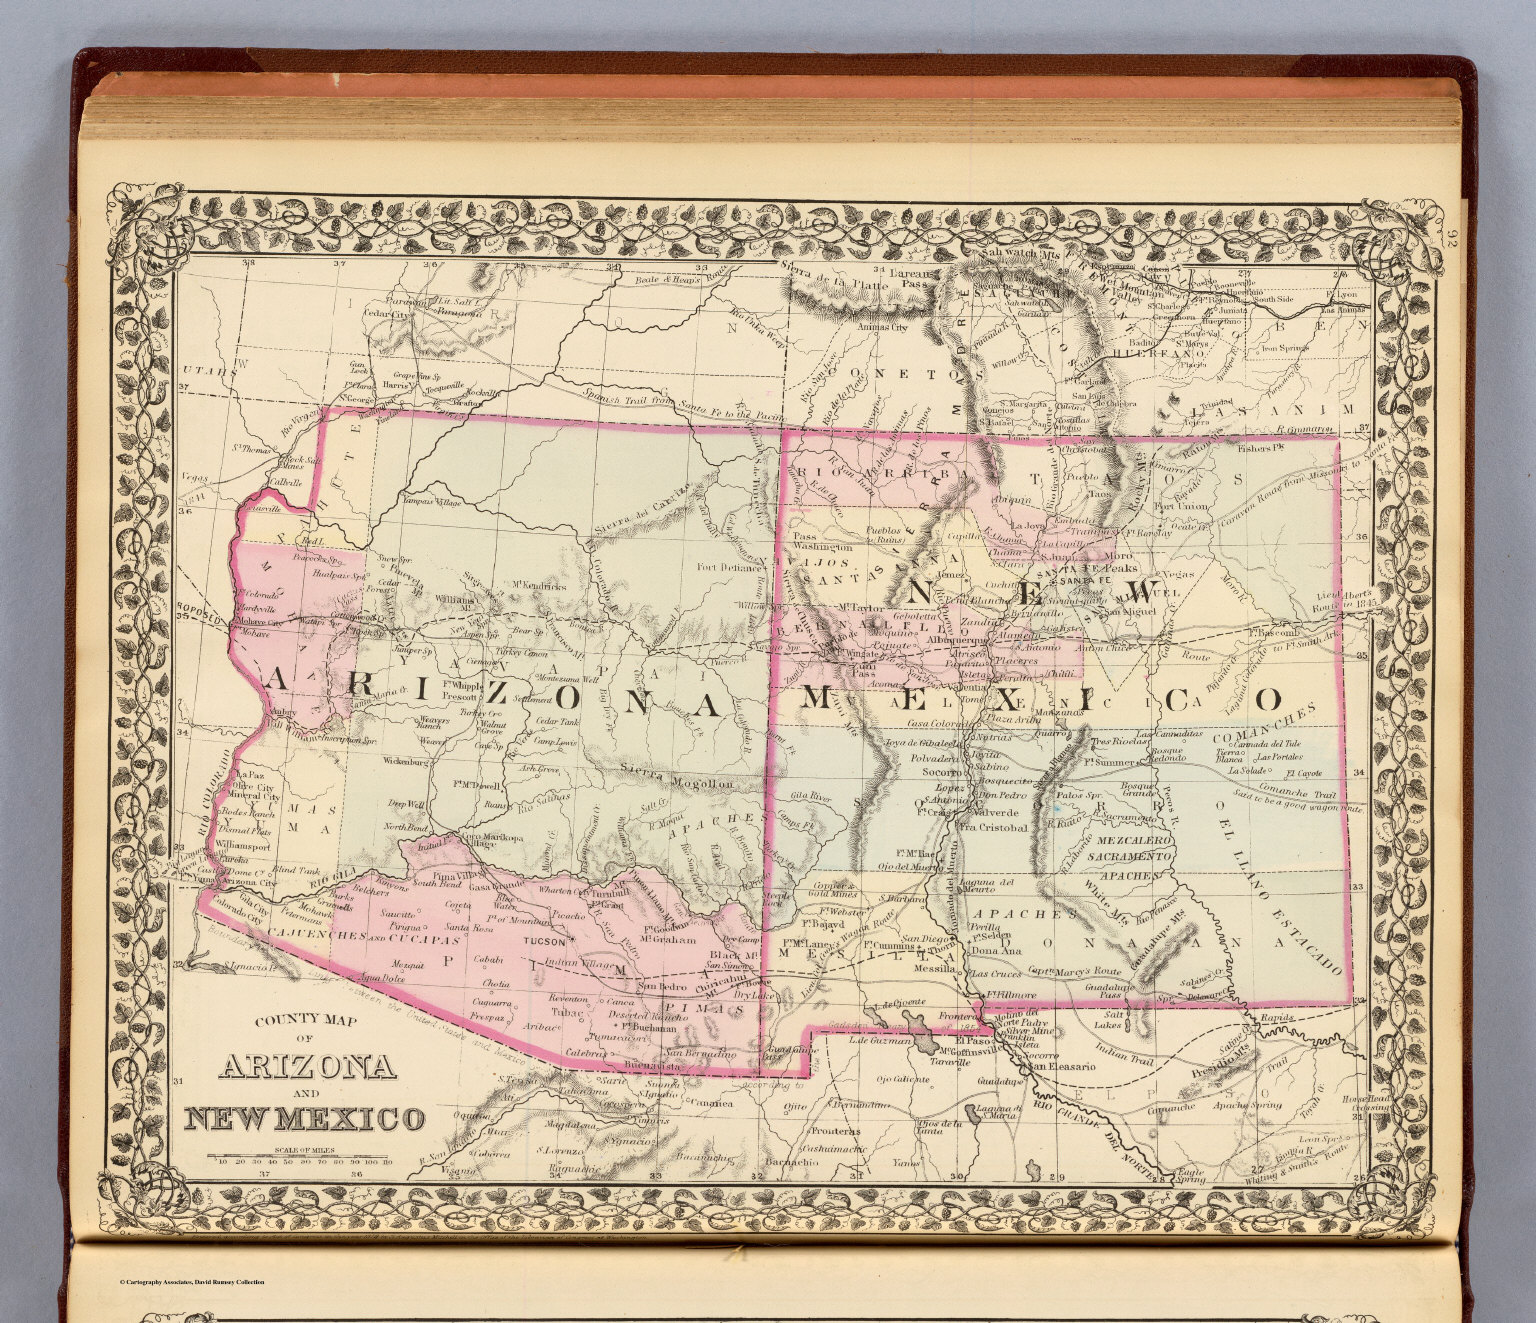 Map Of Arizona 1880.Arizona New Mexico David Rumsey Historical Map Collection